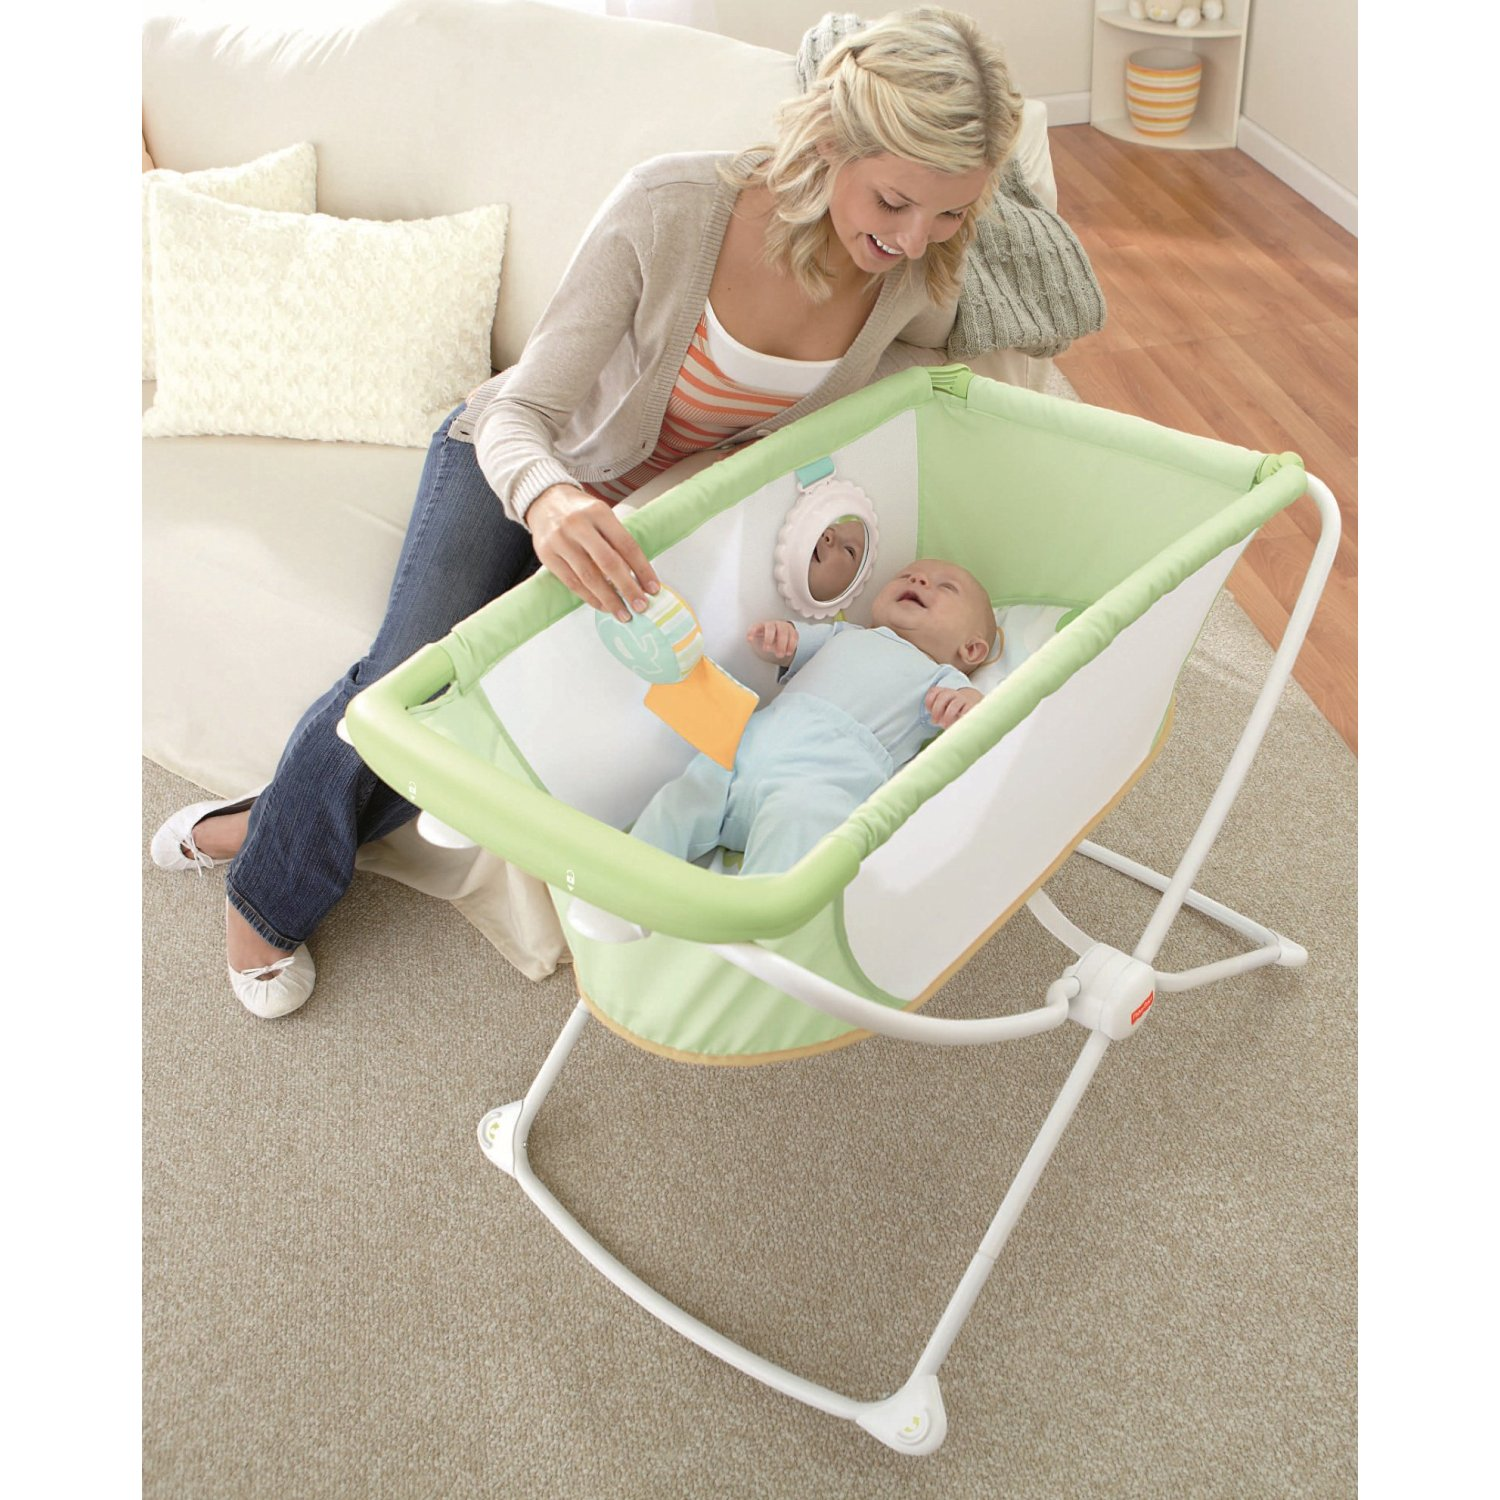 Jual Fisher Price Rock N Play Bassinet Portable Tempat